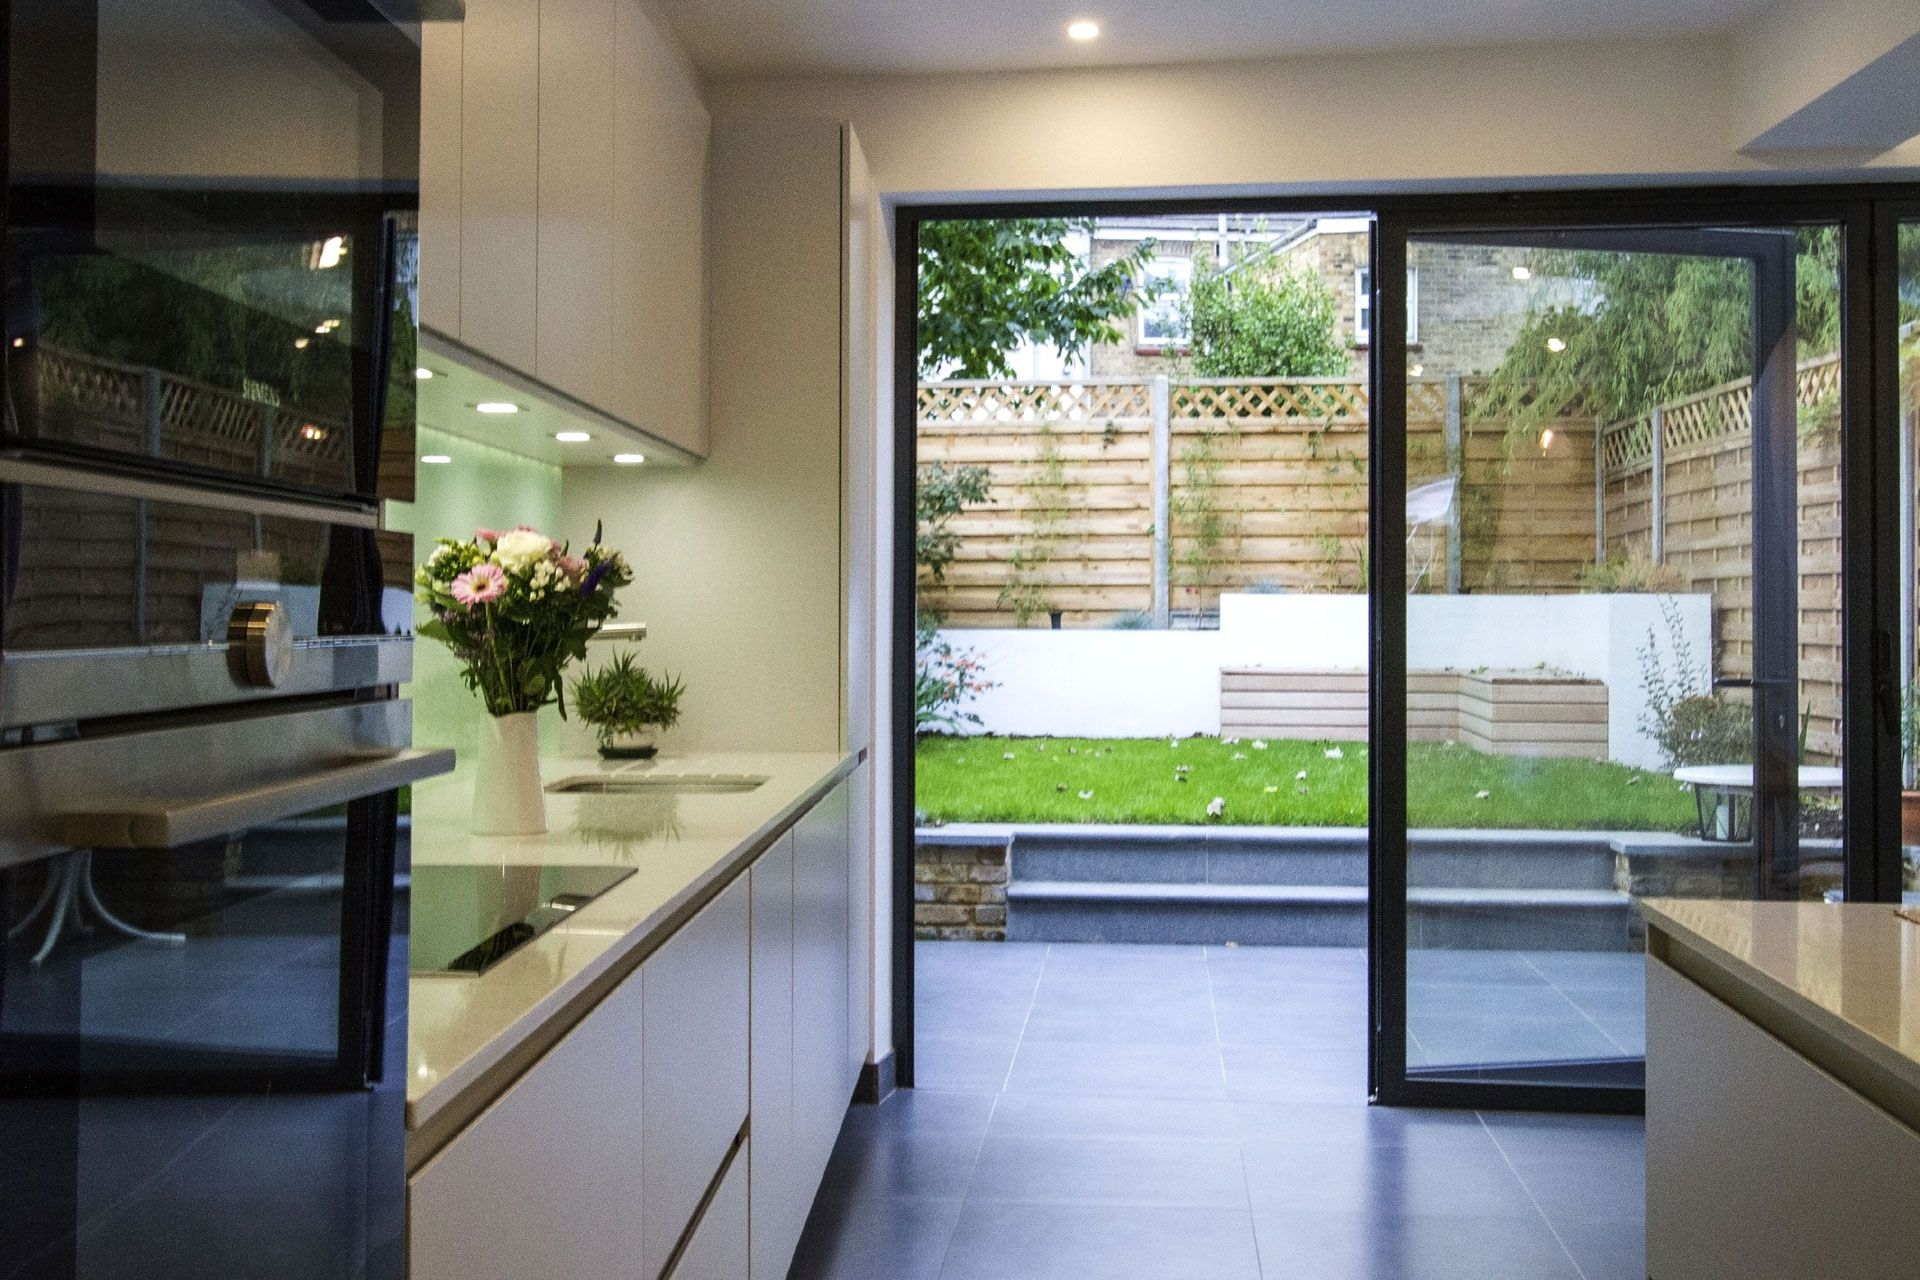 Ips Pronorm Designed This Stylish Modern Kitchen For A Customer In Endearing Kitchen Design Richmond Design Ideas